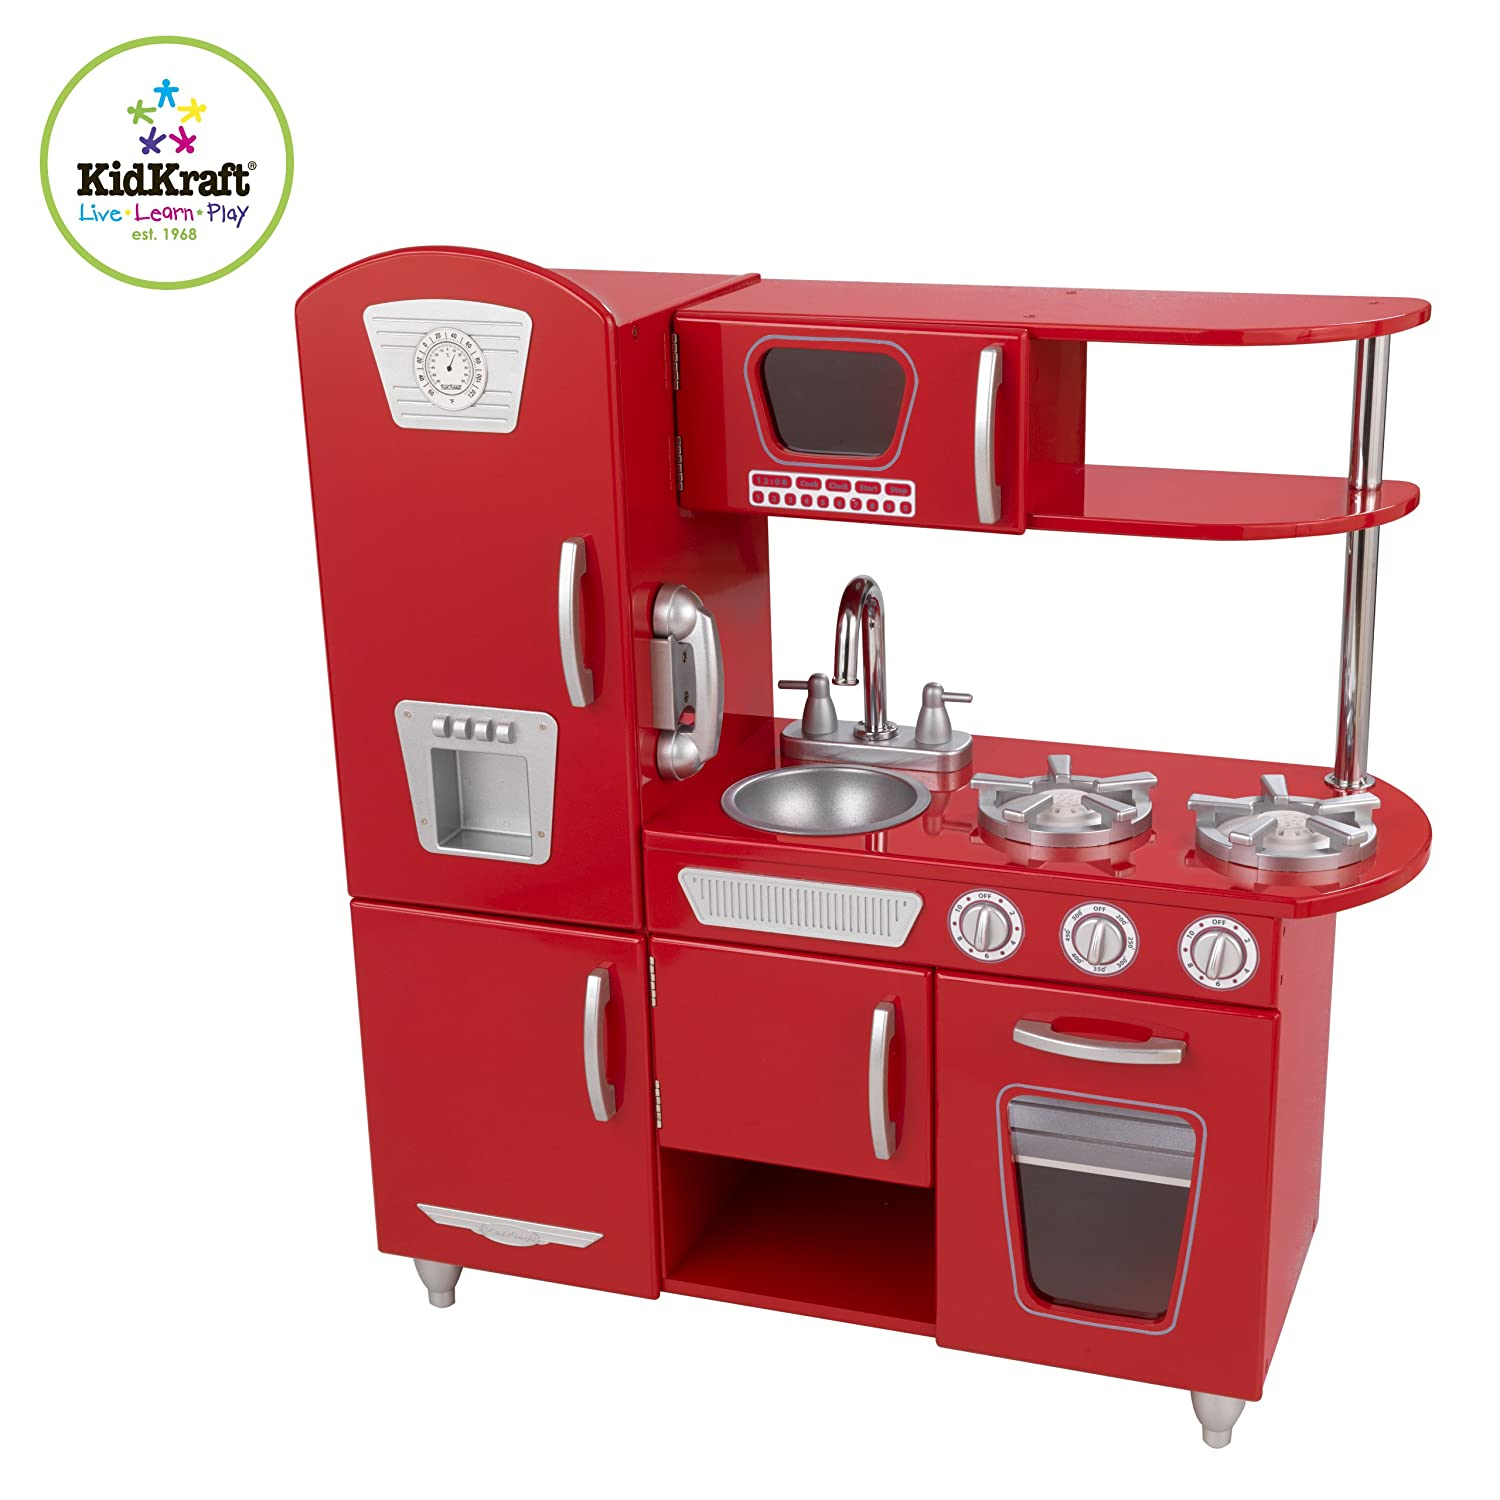 kidkraft vintage play kitchen red kidkraft